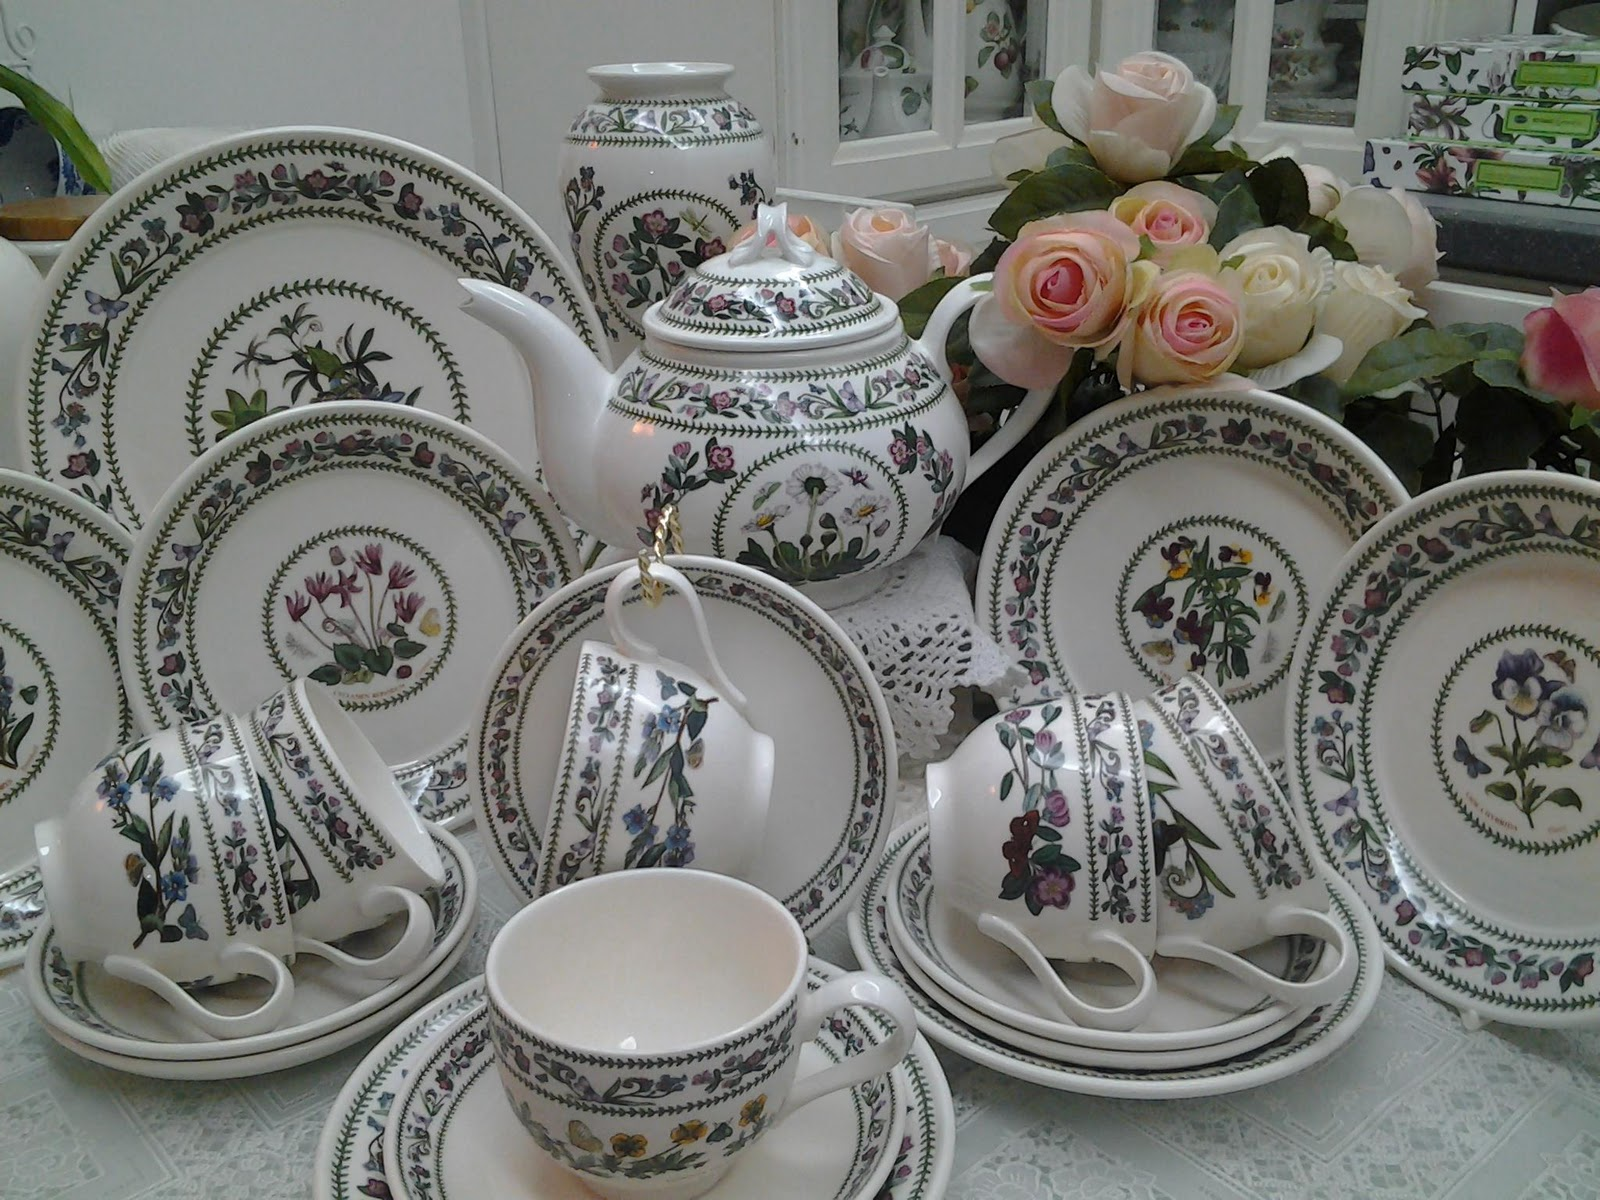 Lovely Treasures From English Garden Portmeirion Botanic Garden Variation Tea Set